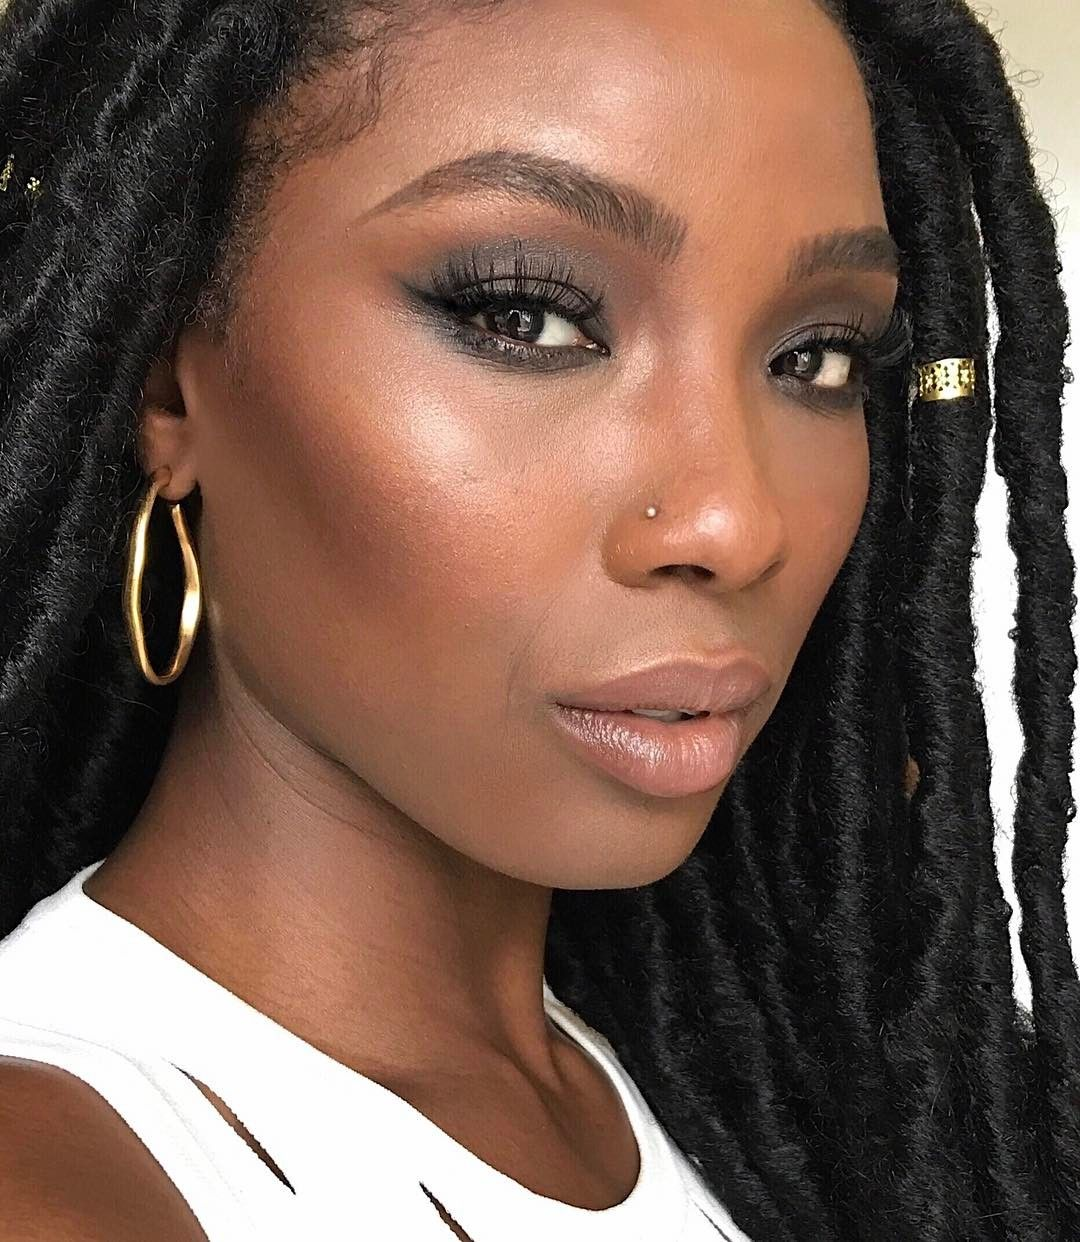 Pin by Sarah Besozzi on Beauty in 2019 Makeup, Makeup